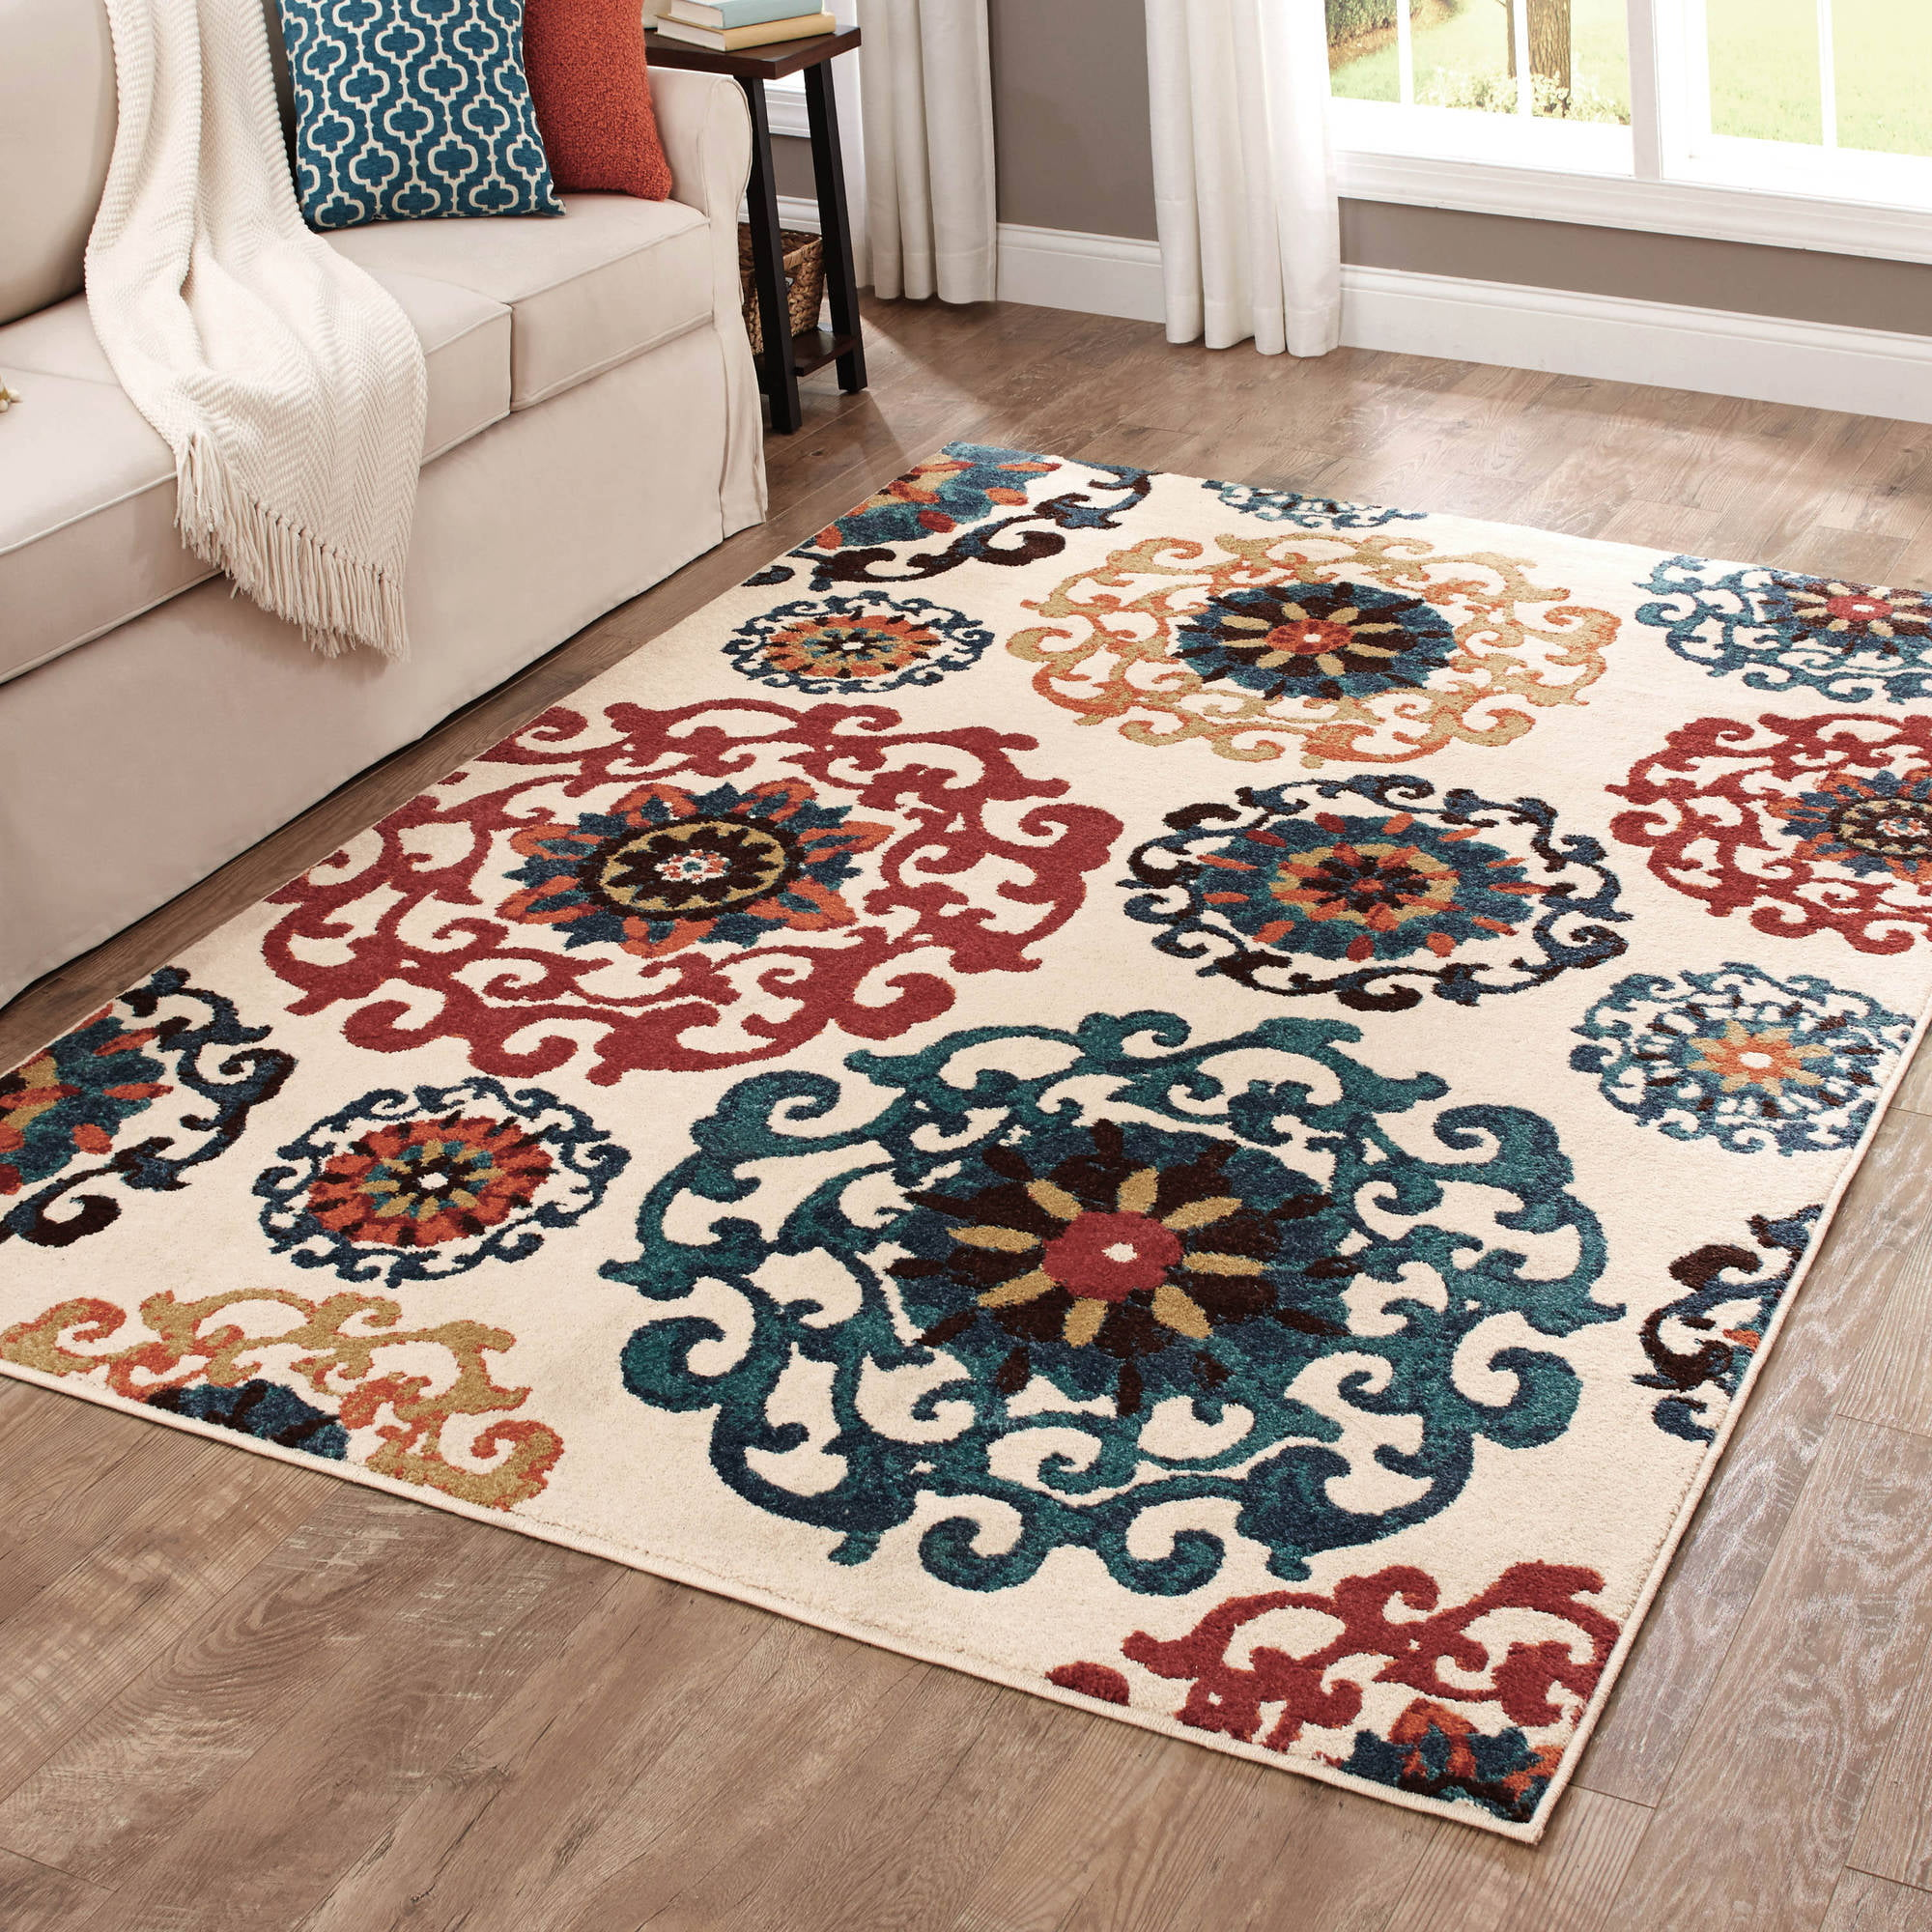 Natural Area Rugs Paisley Hand Woven White Rug